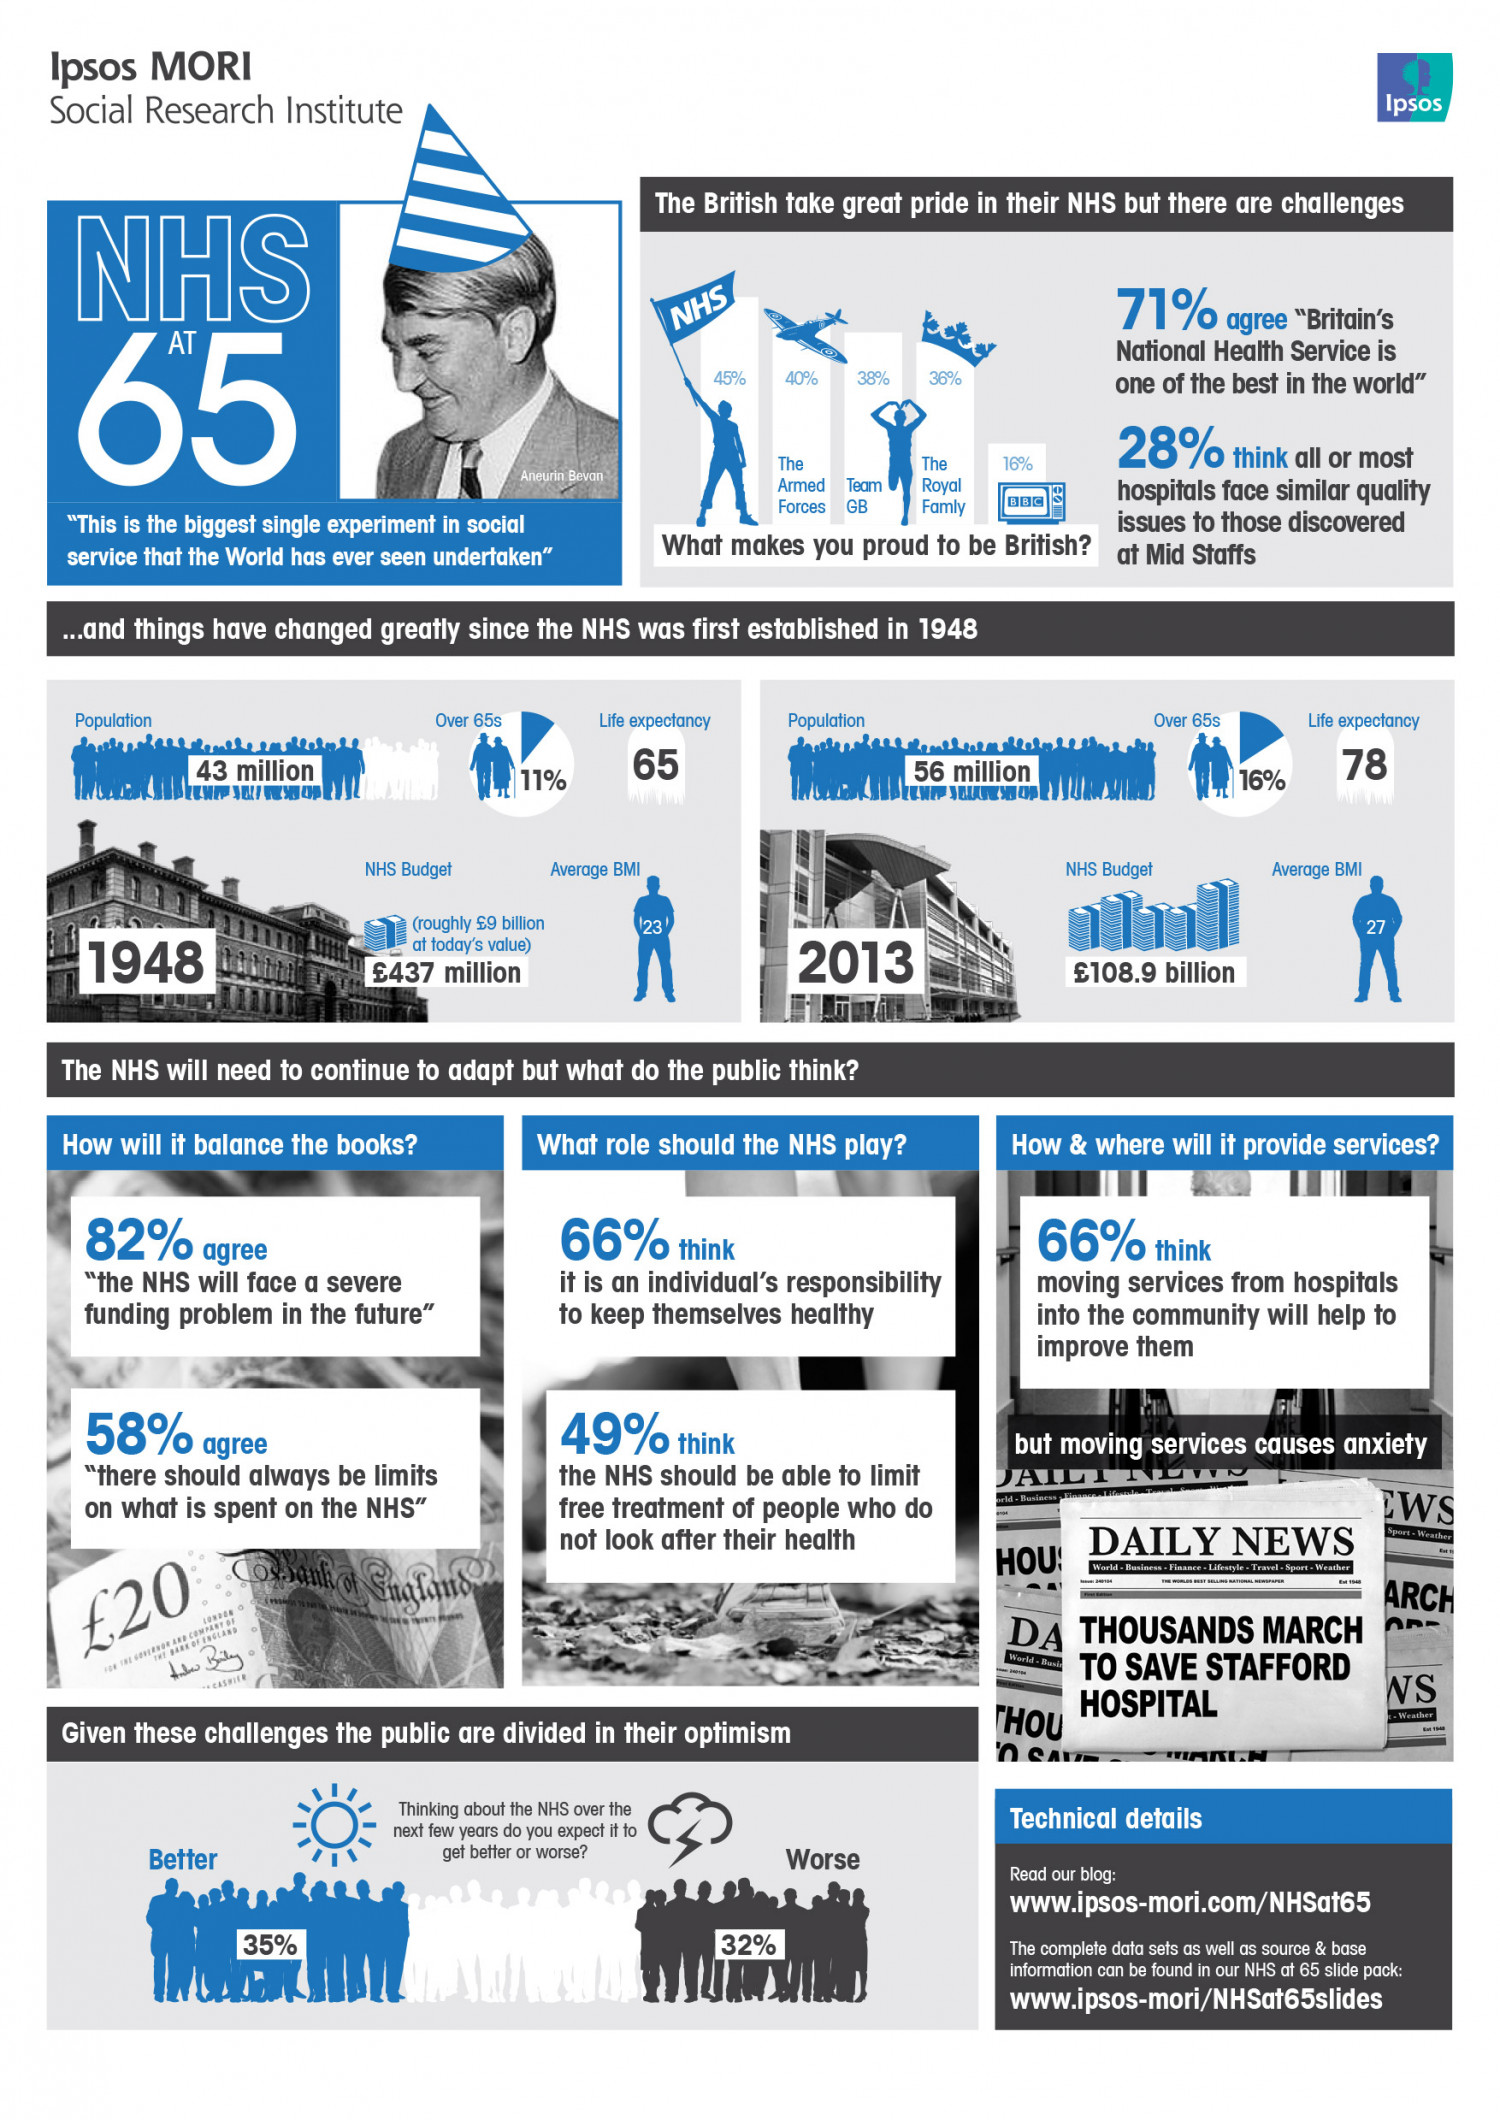 The NHS at 65 Infographic